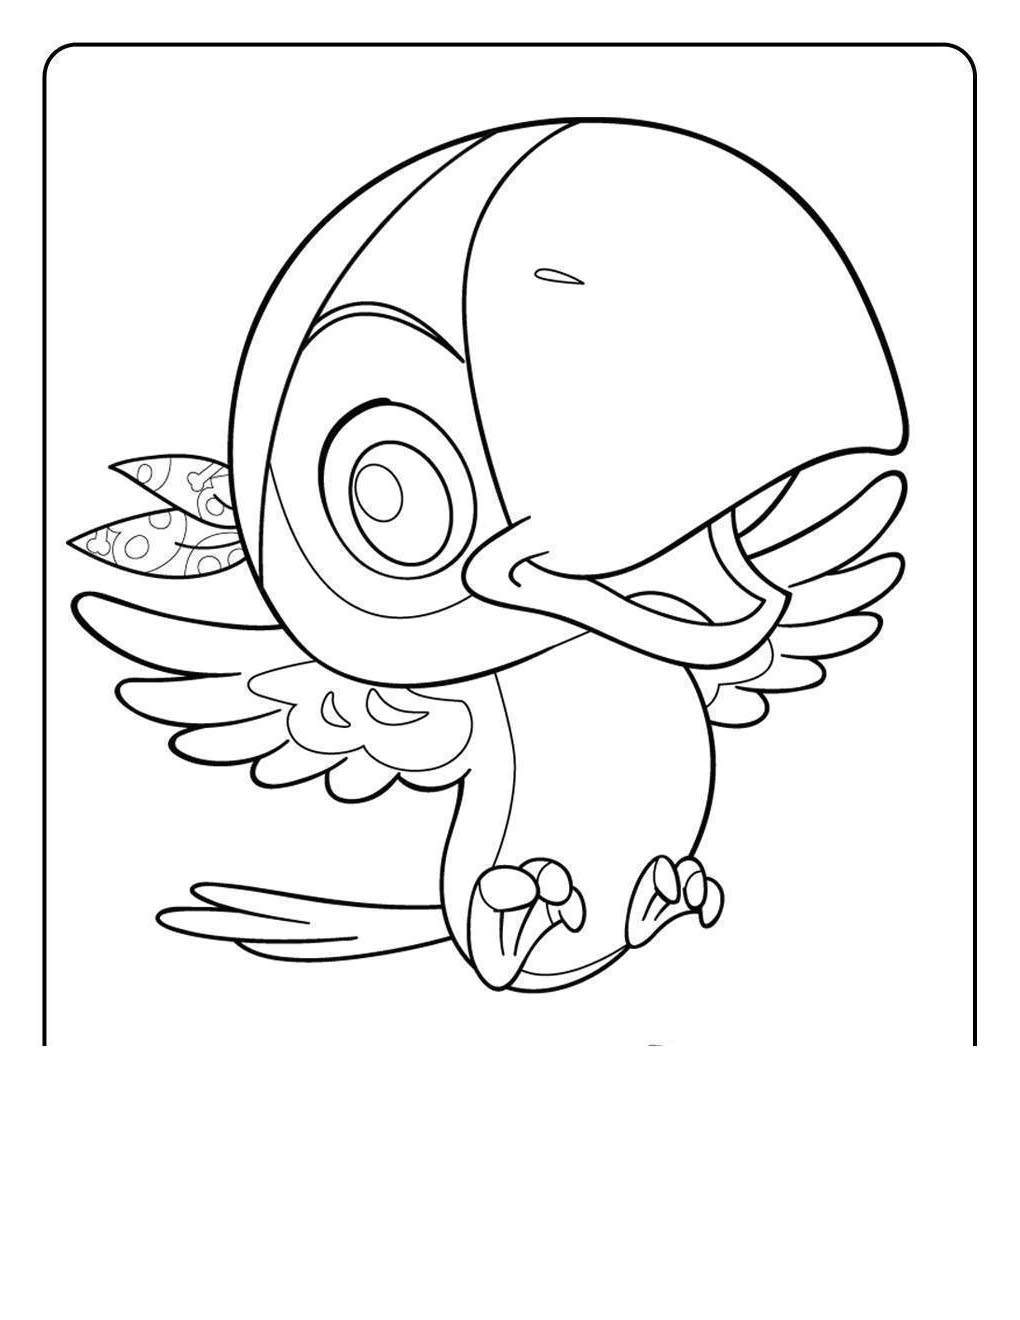 Free Jake And The Neverland Pirates Coloring Pages plete Izzy Outline printable